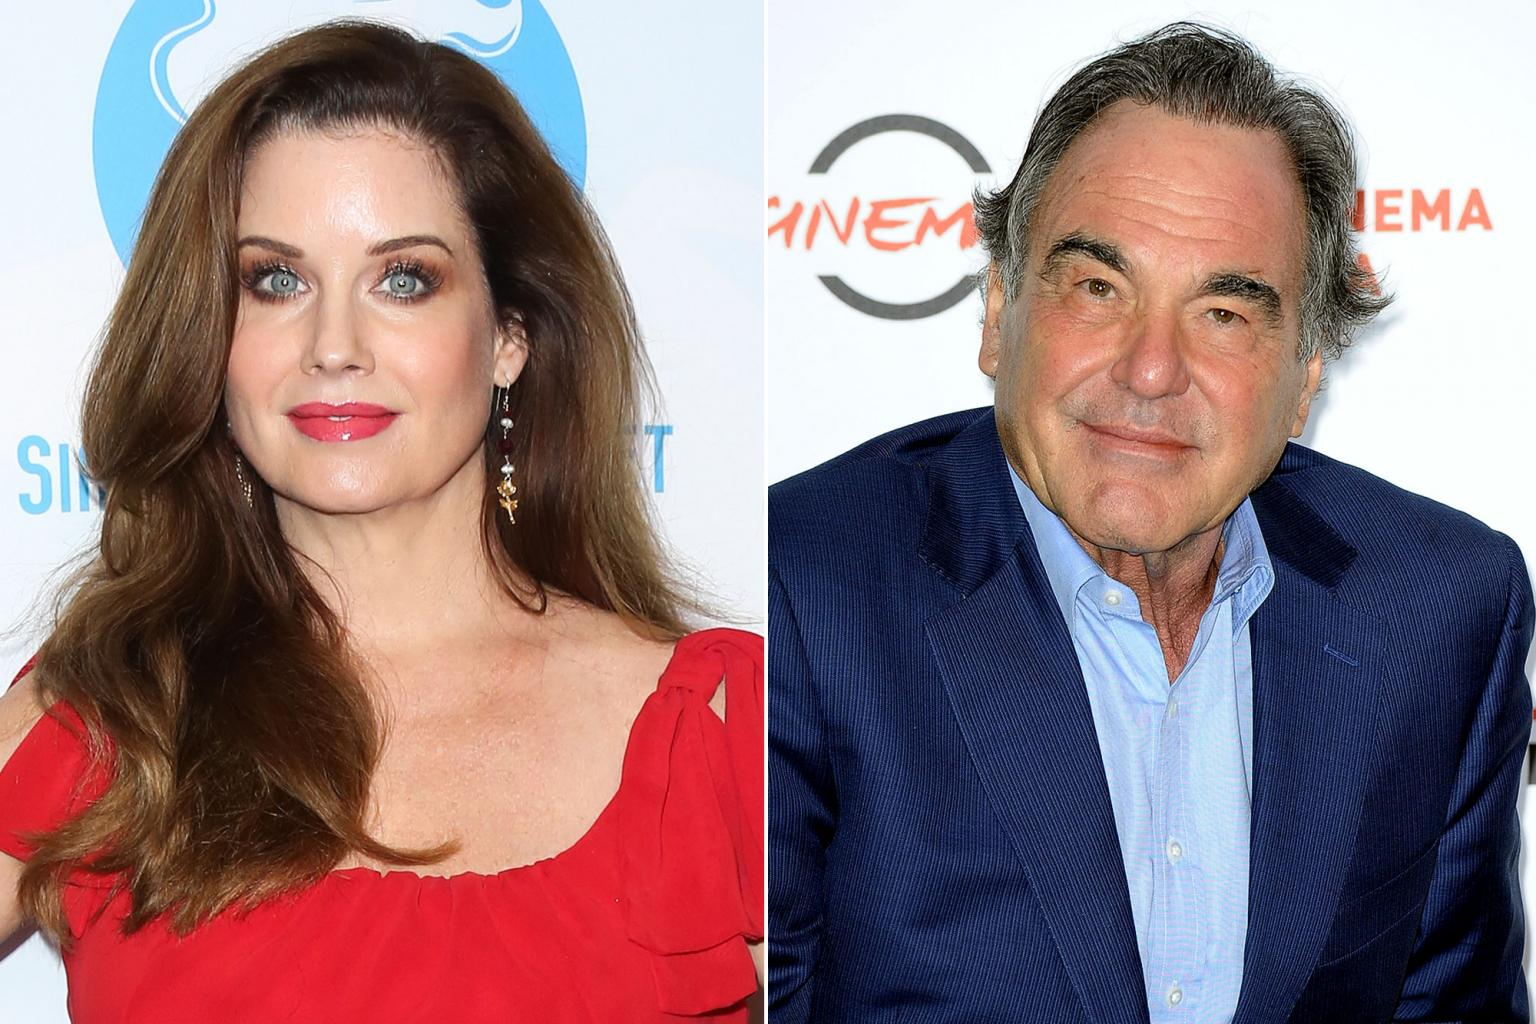 Ex Playboy Model Accuses Oliver Stone of Grabbing Her Breast After He Defended Harvey Weinstein: 'Two of a Kind!'